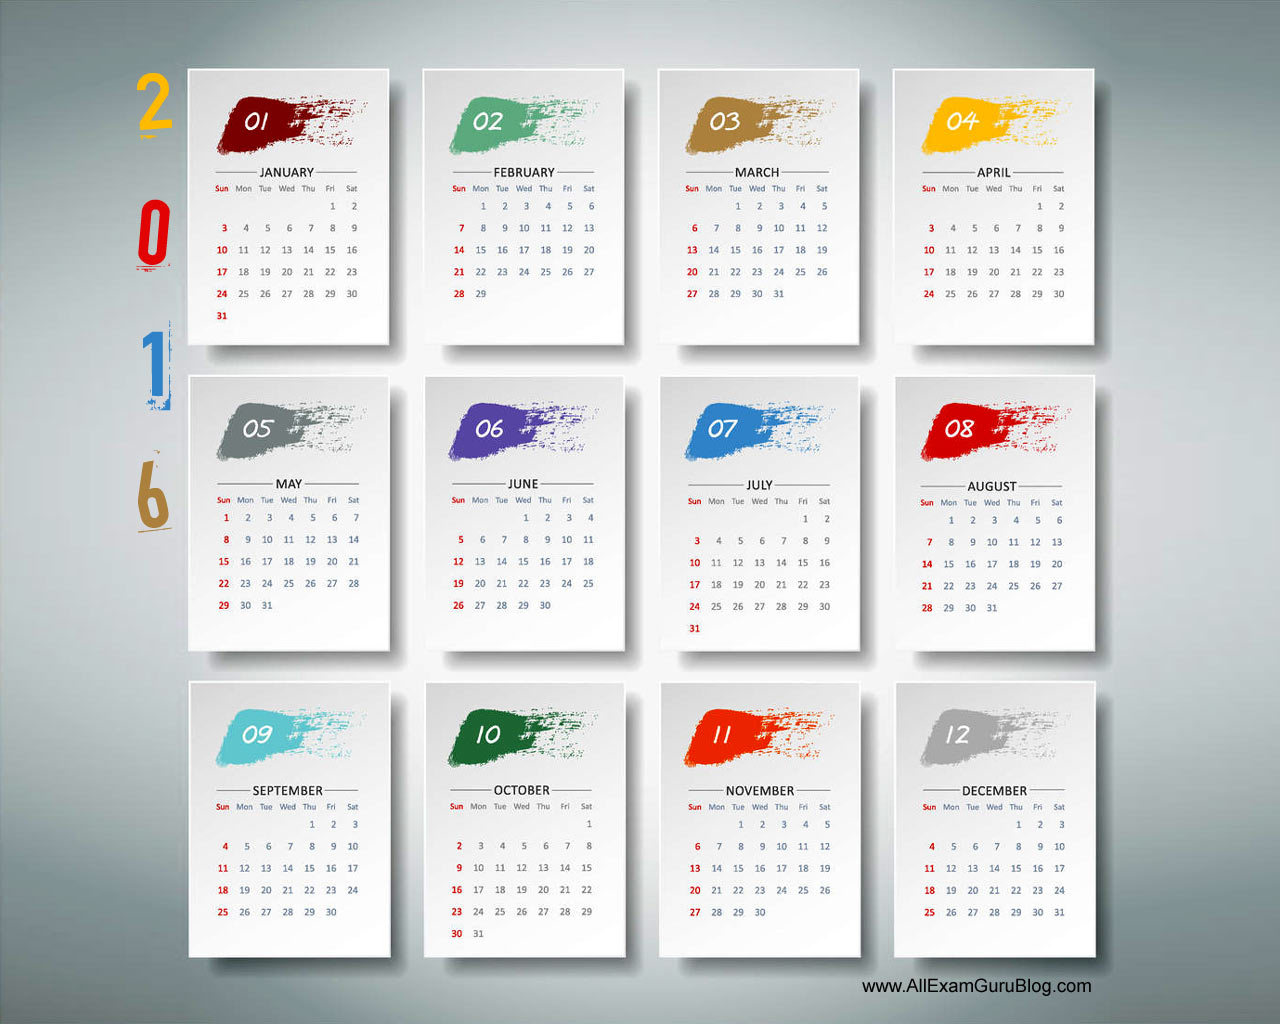 Calendar Wallpaper Windows : Calendar desktop wallpaper download